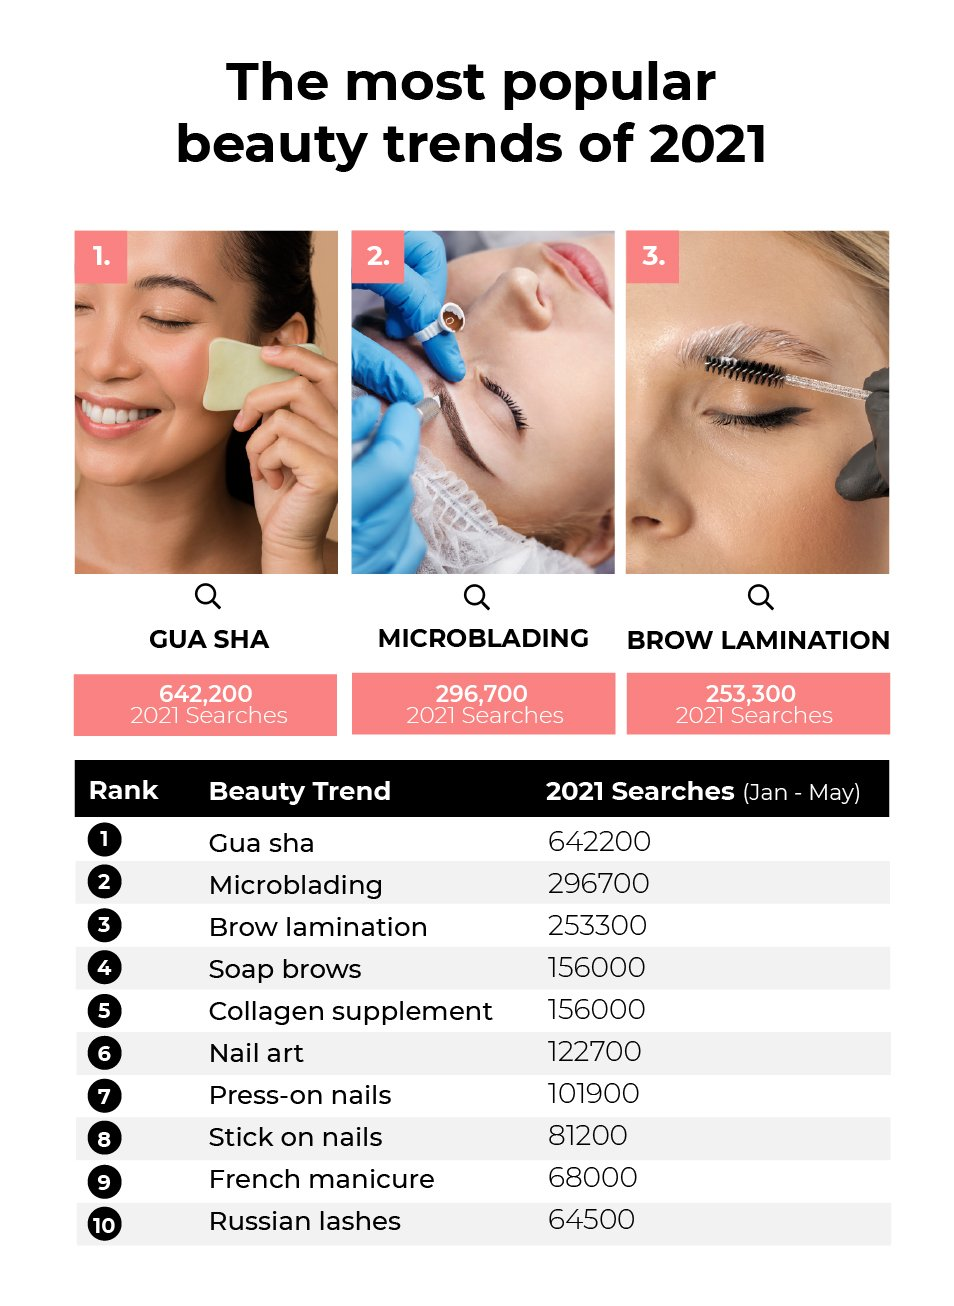 The most popular beauty trends of 2021: Gua sha (642,200 searches), Microblading (296,700 searches) and Brow Lamination (253,000 searches)